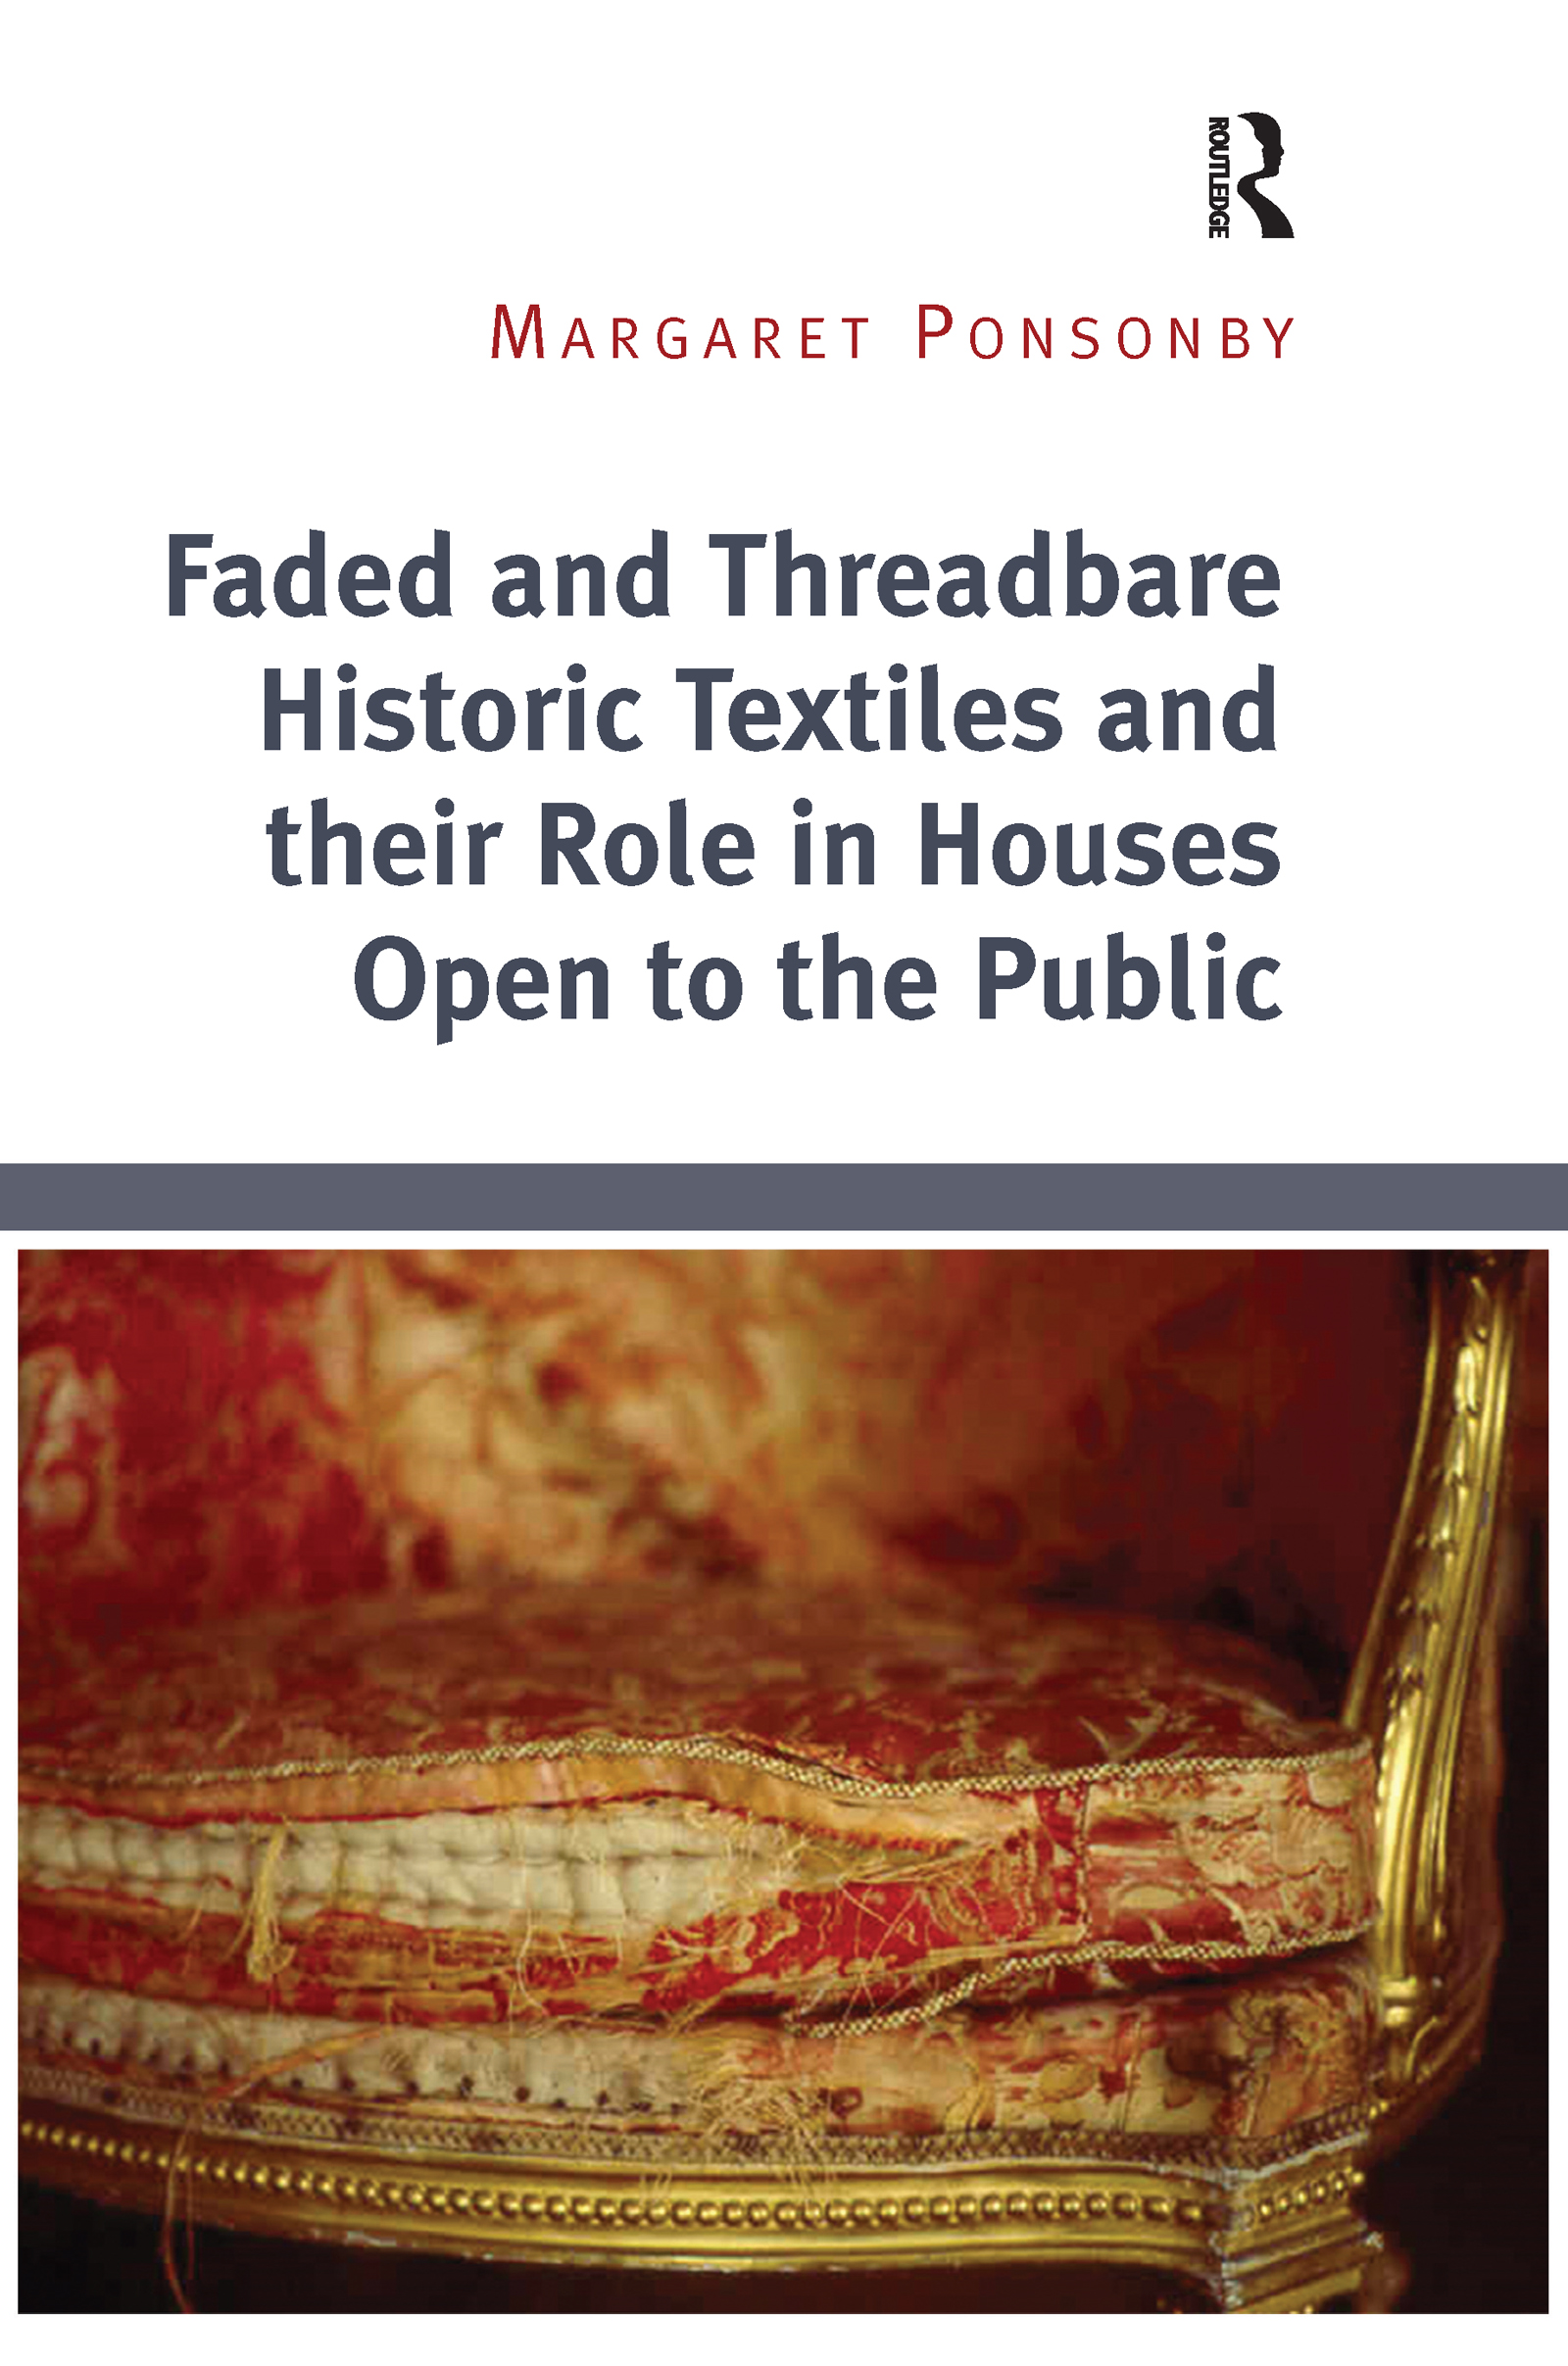 Faded and Threadbare Historic Textiles and their Role in Houses Open to the Public book cover